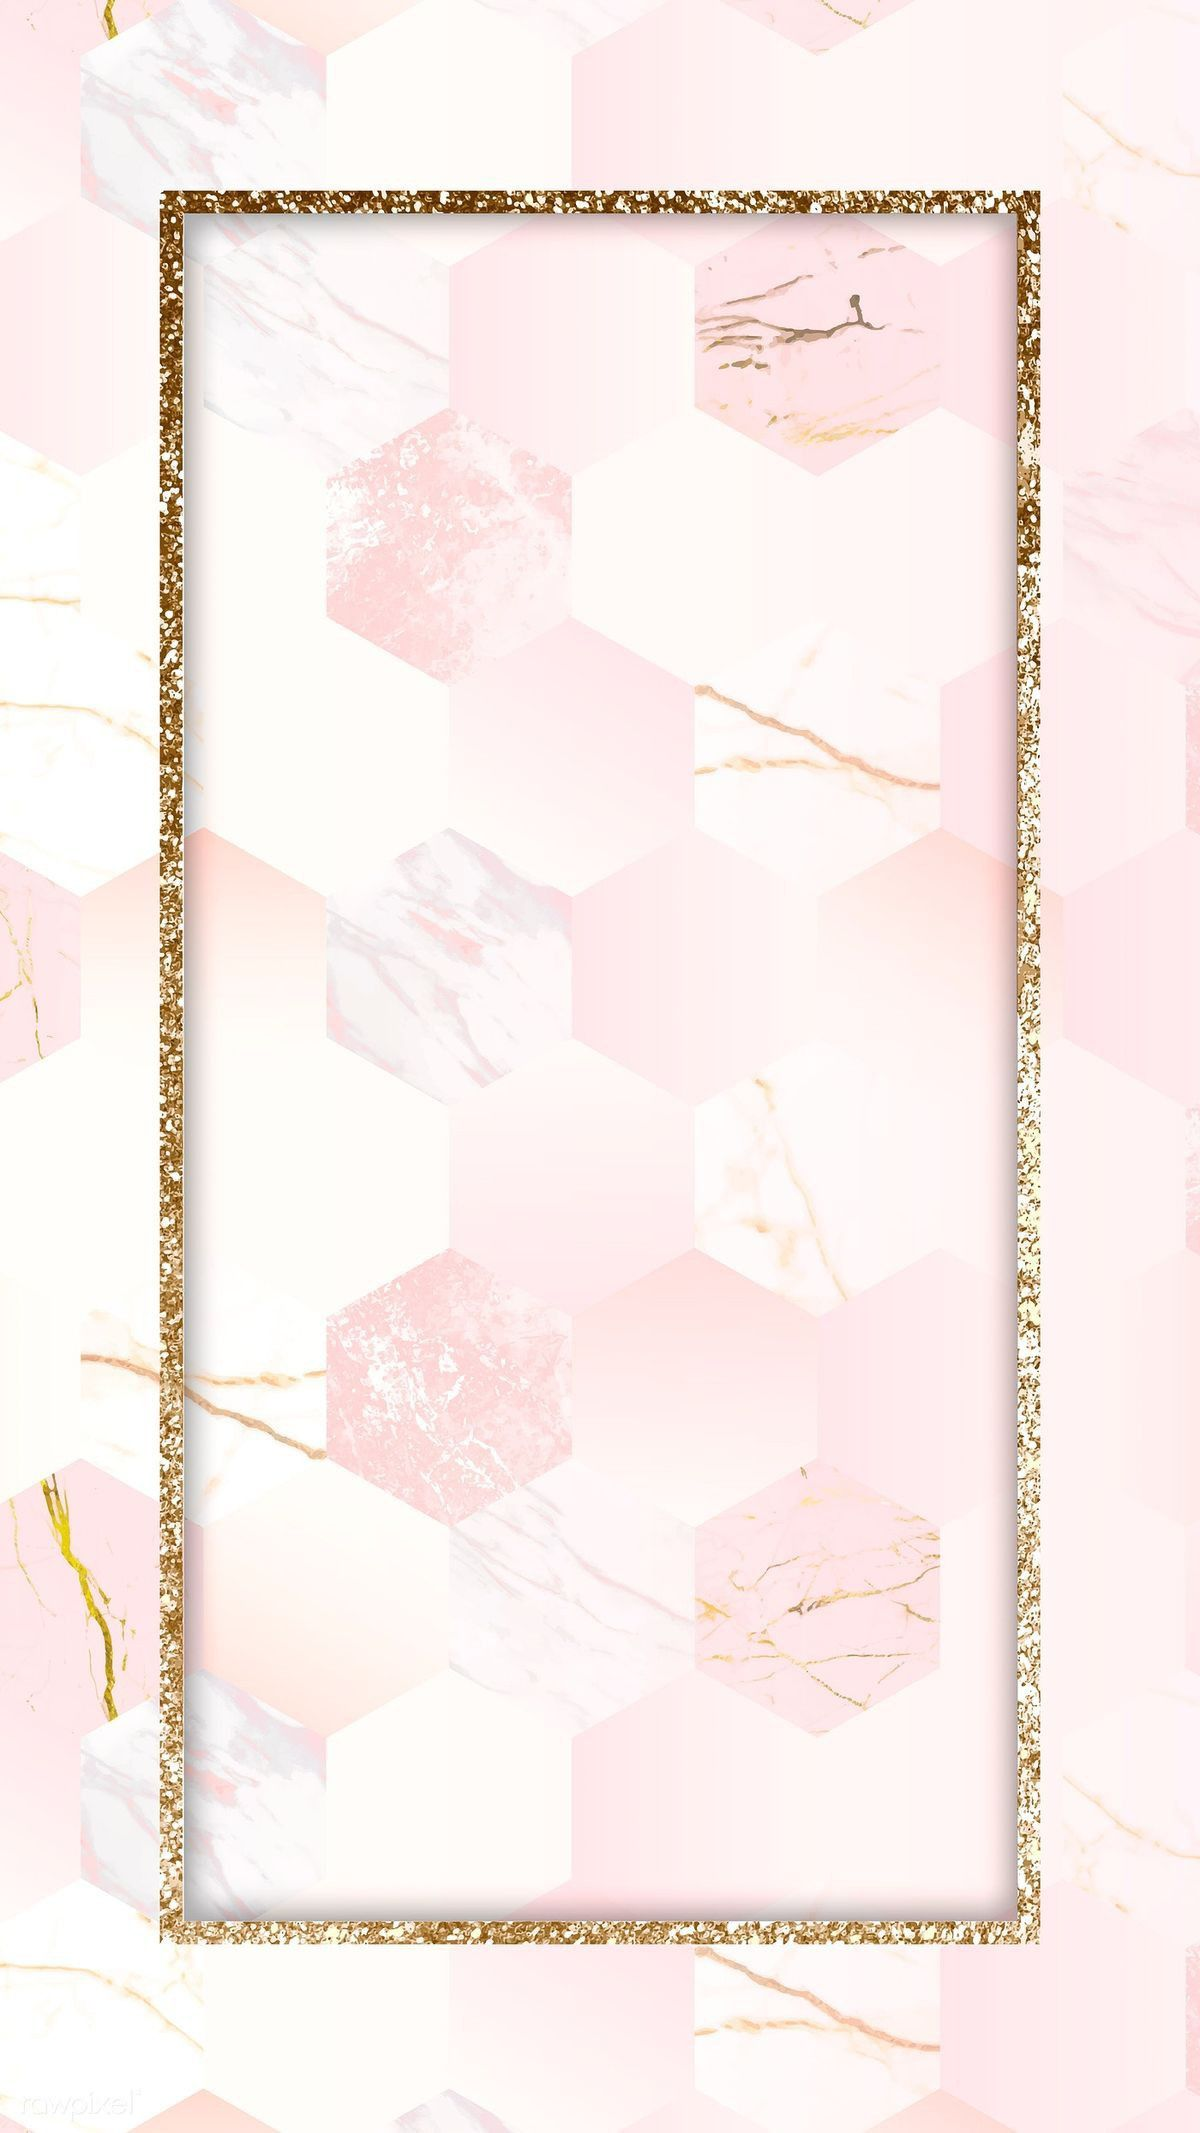 Pin By Angelmonic On Pink Pink Background Flower Background Wallpaper Girly Frame